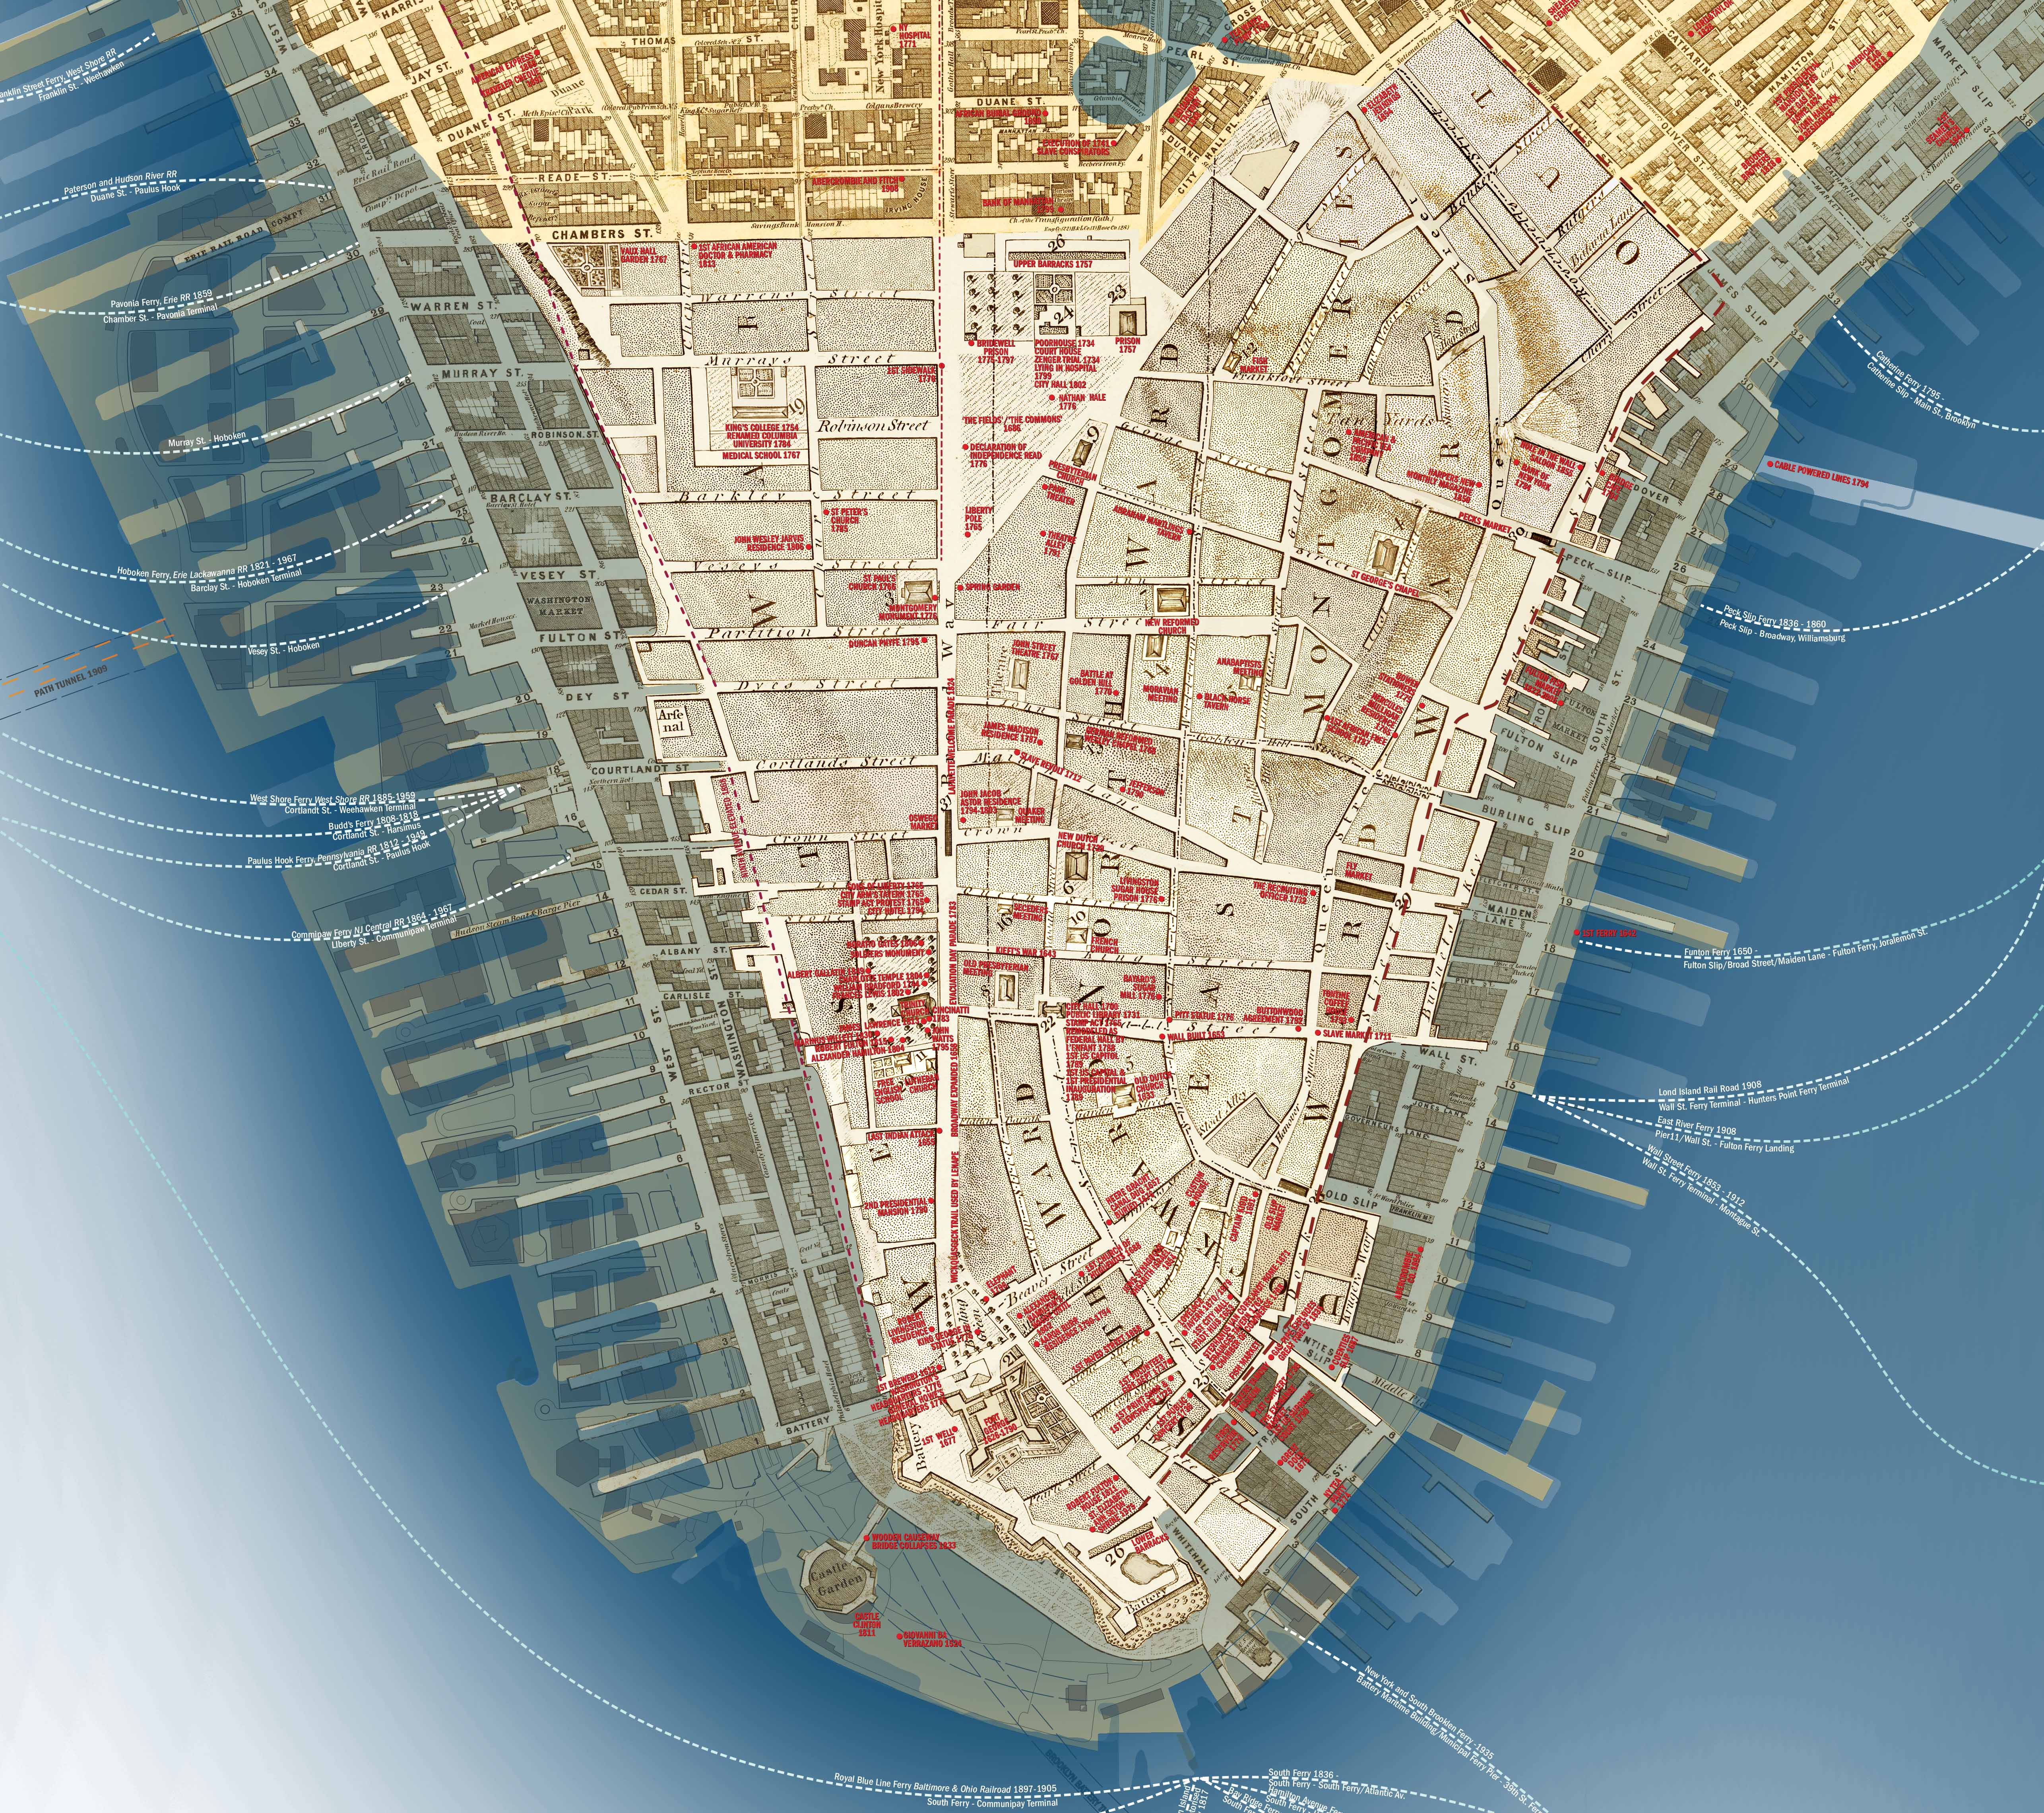 CultureNOW publishes its Lower Manhattan Then and NOW Map